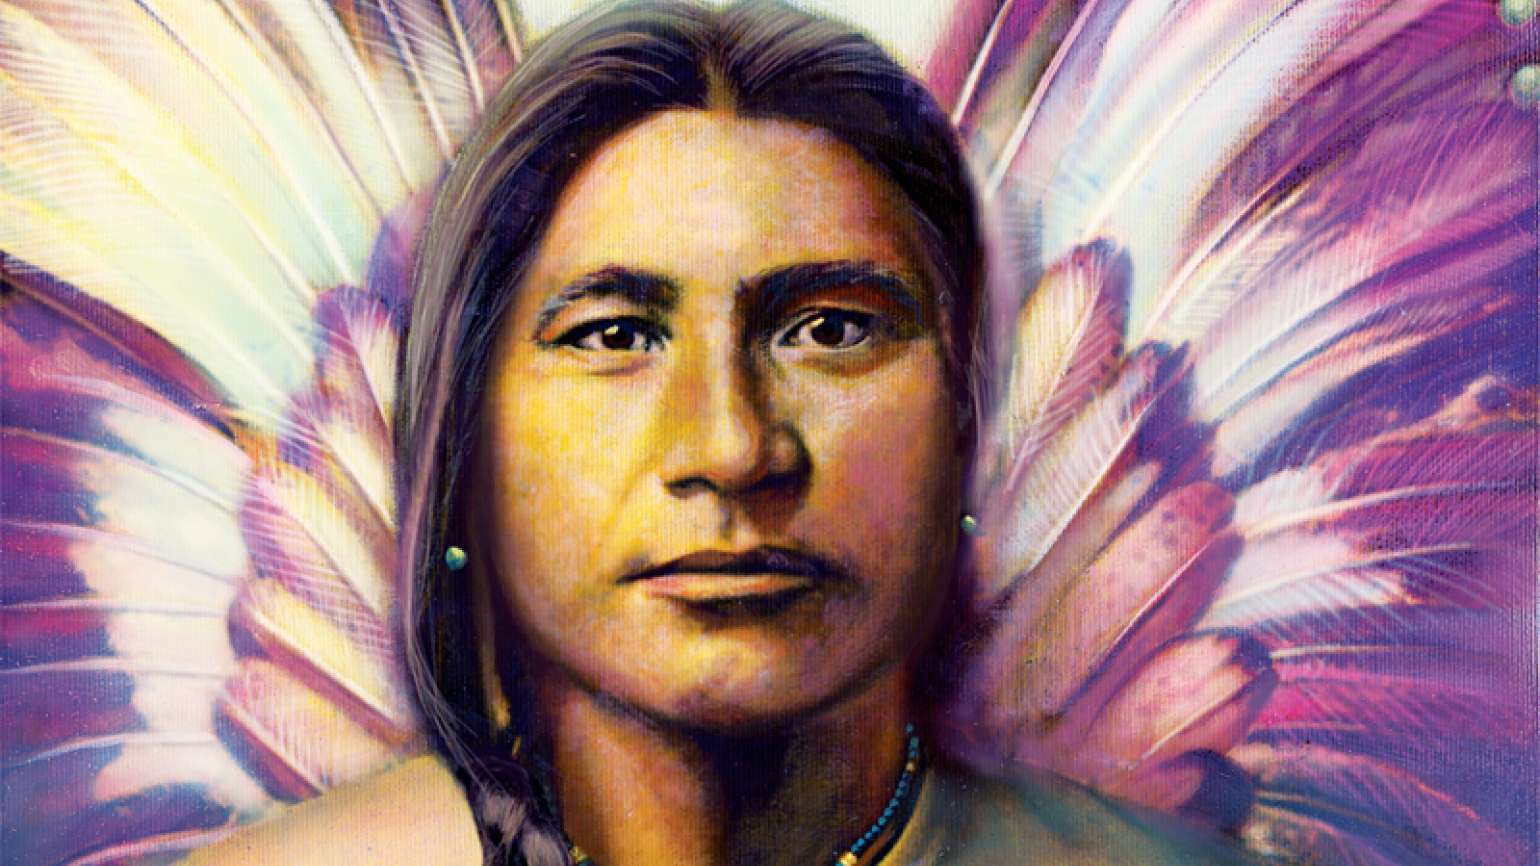 An artist's rendering of a Native American angel